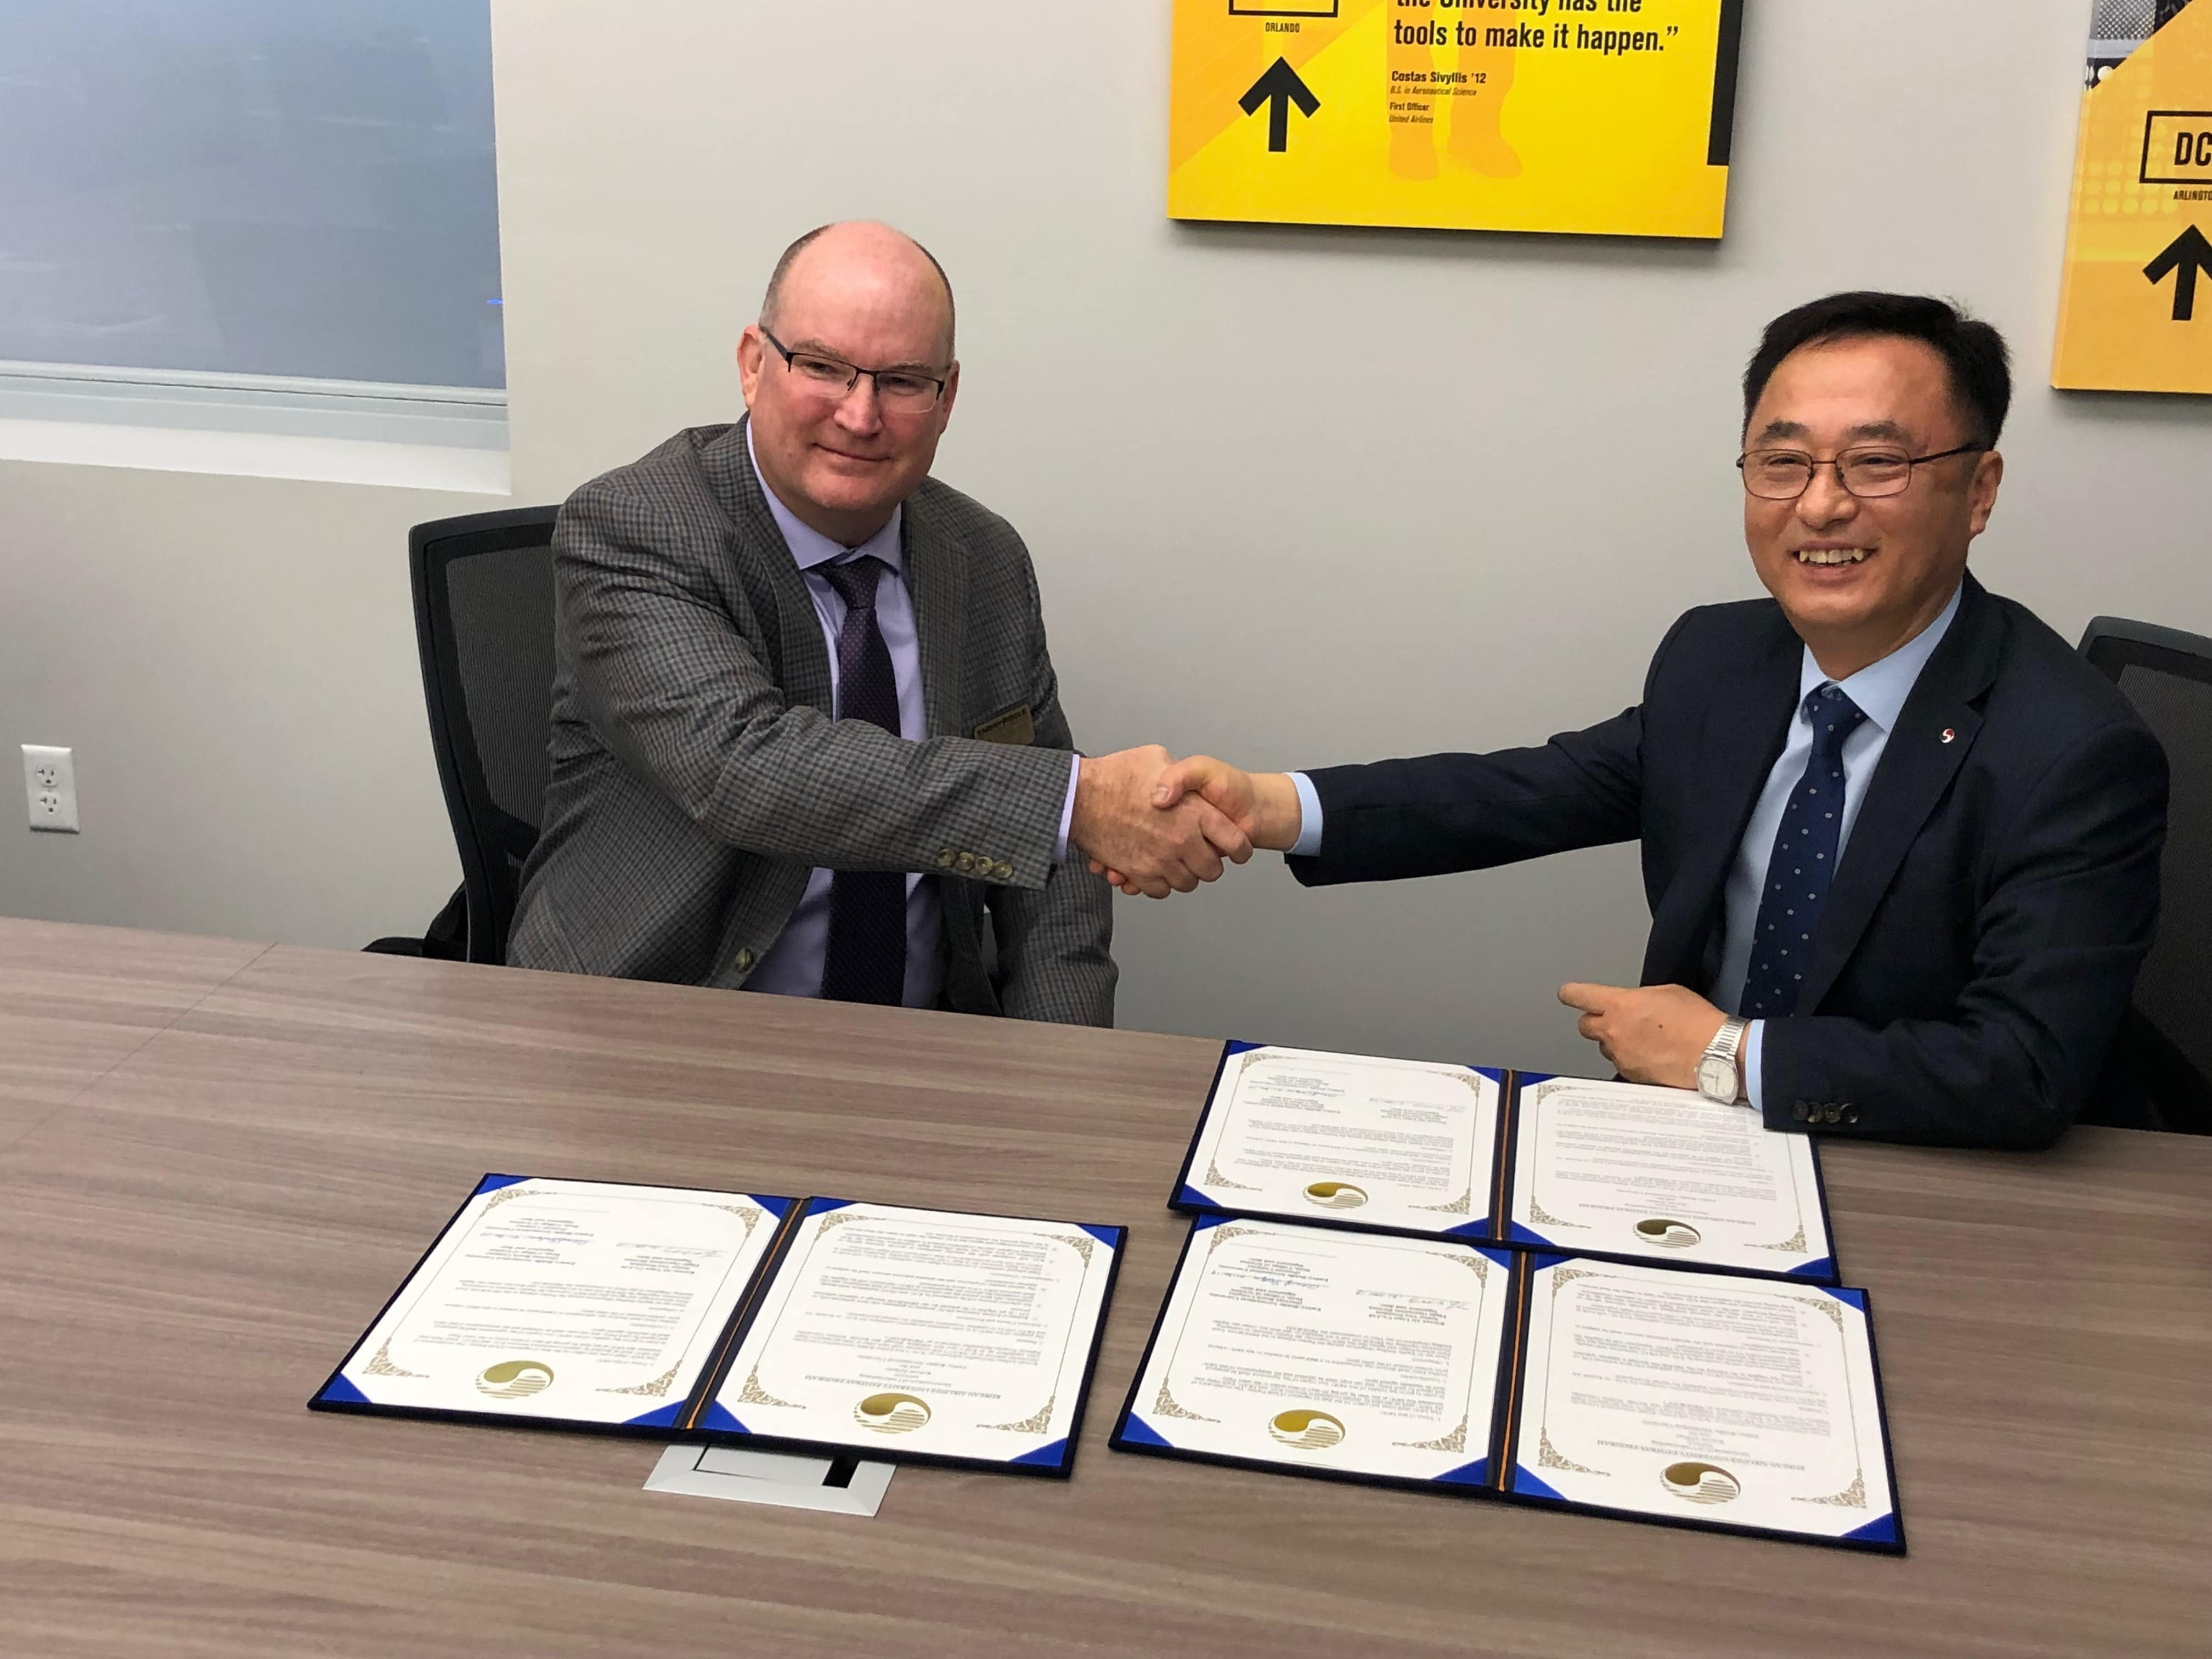 Dr. Alan Stolzer (at left), dean of the College of Aviation on Embry-Riddle's Daytona Beach Campus, recently met with Capt. Kim, senior vice president of Korean Airlines' Flight Operations division, to launch a joint career pathway program for pilots.